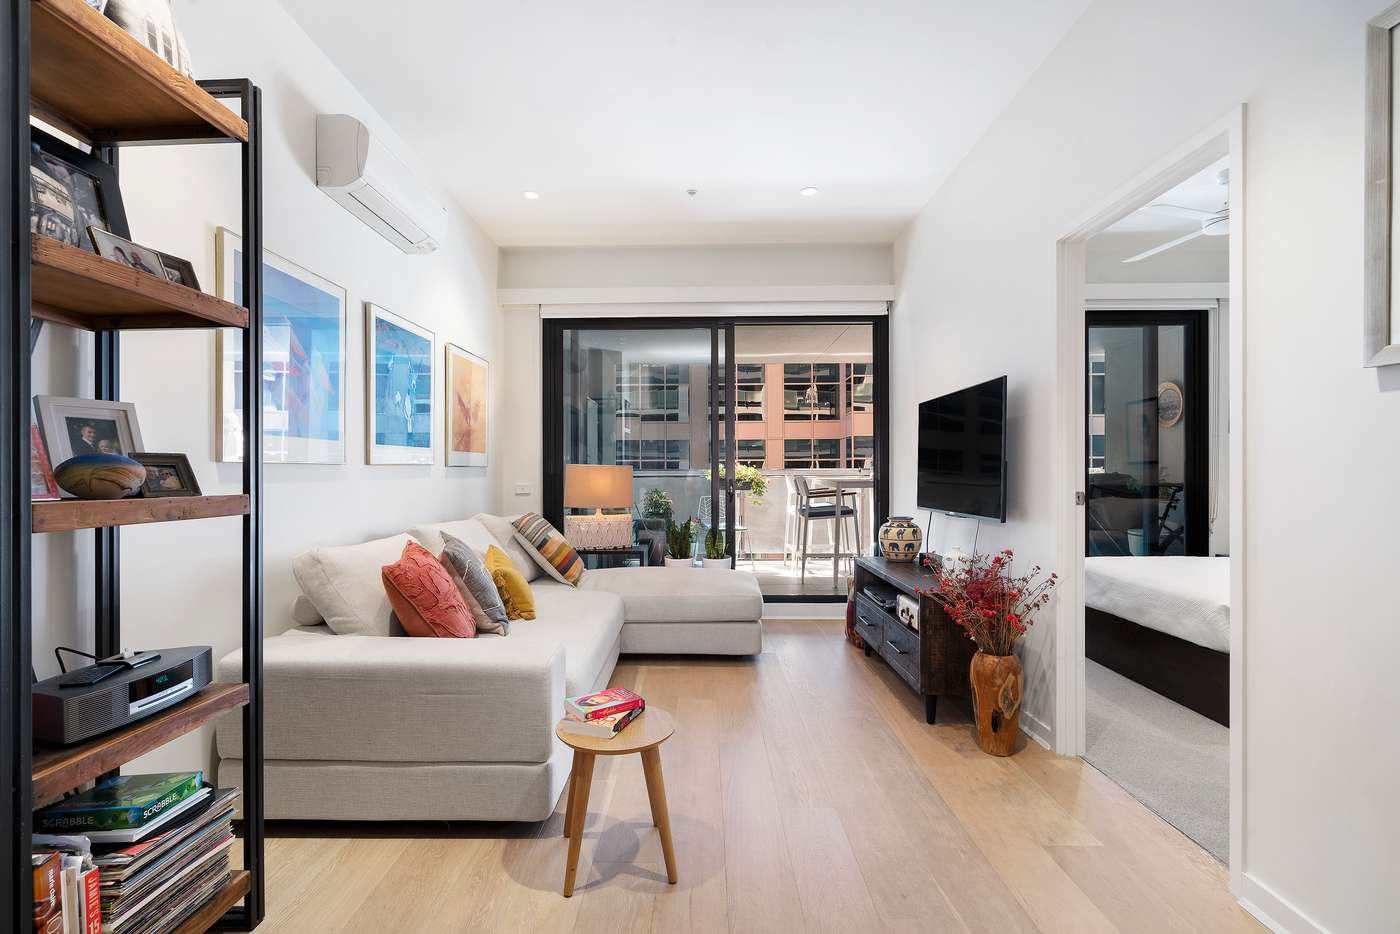 Main view of Homely apartment listing, 611/199 William Street, Melbourne VIC 3000